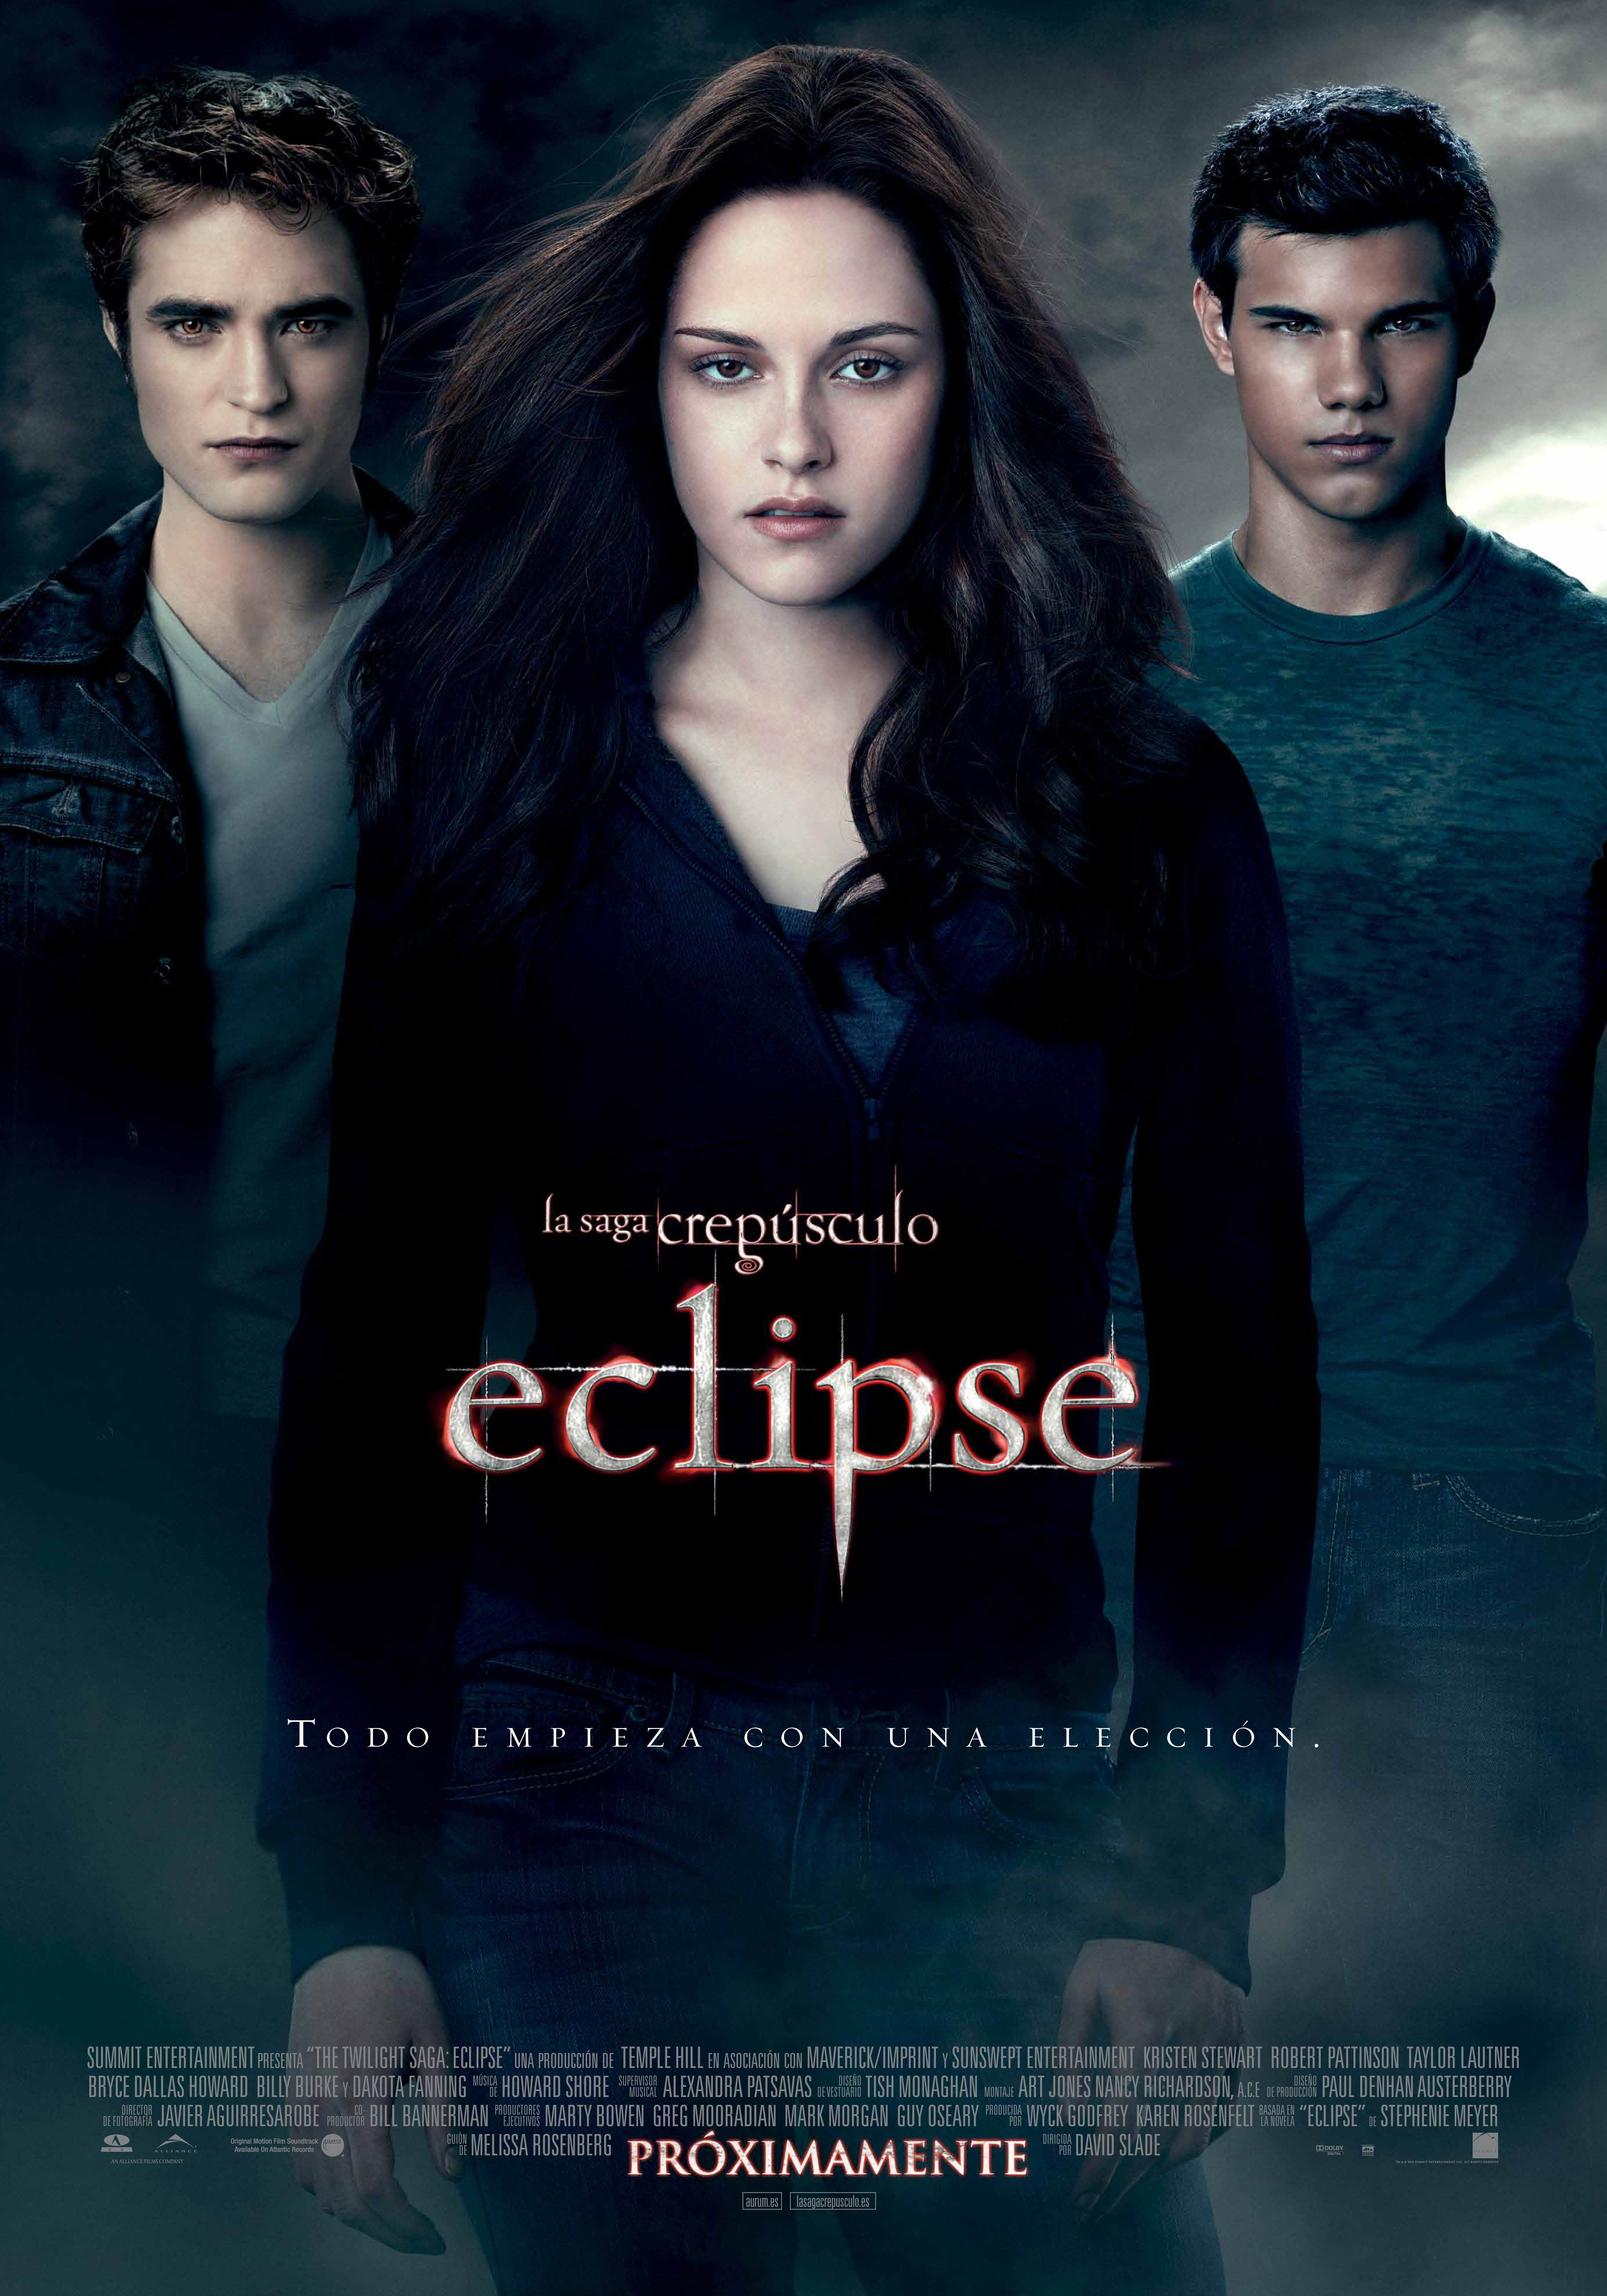 TWILIGHT ECLIPSE E-BOOKS FOR KIDS EBOOK DOWNLOAD